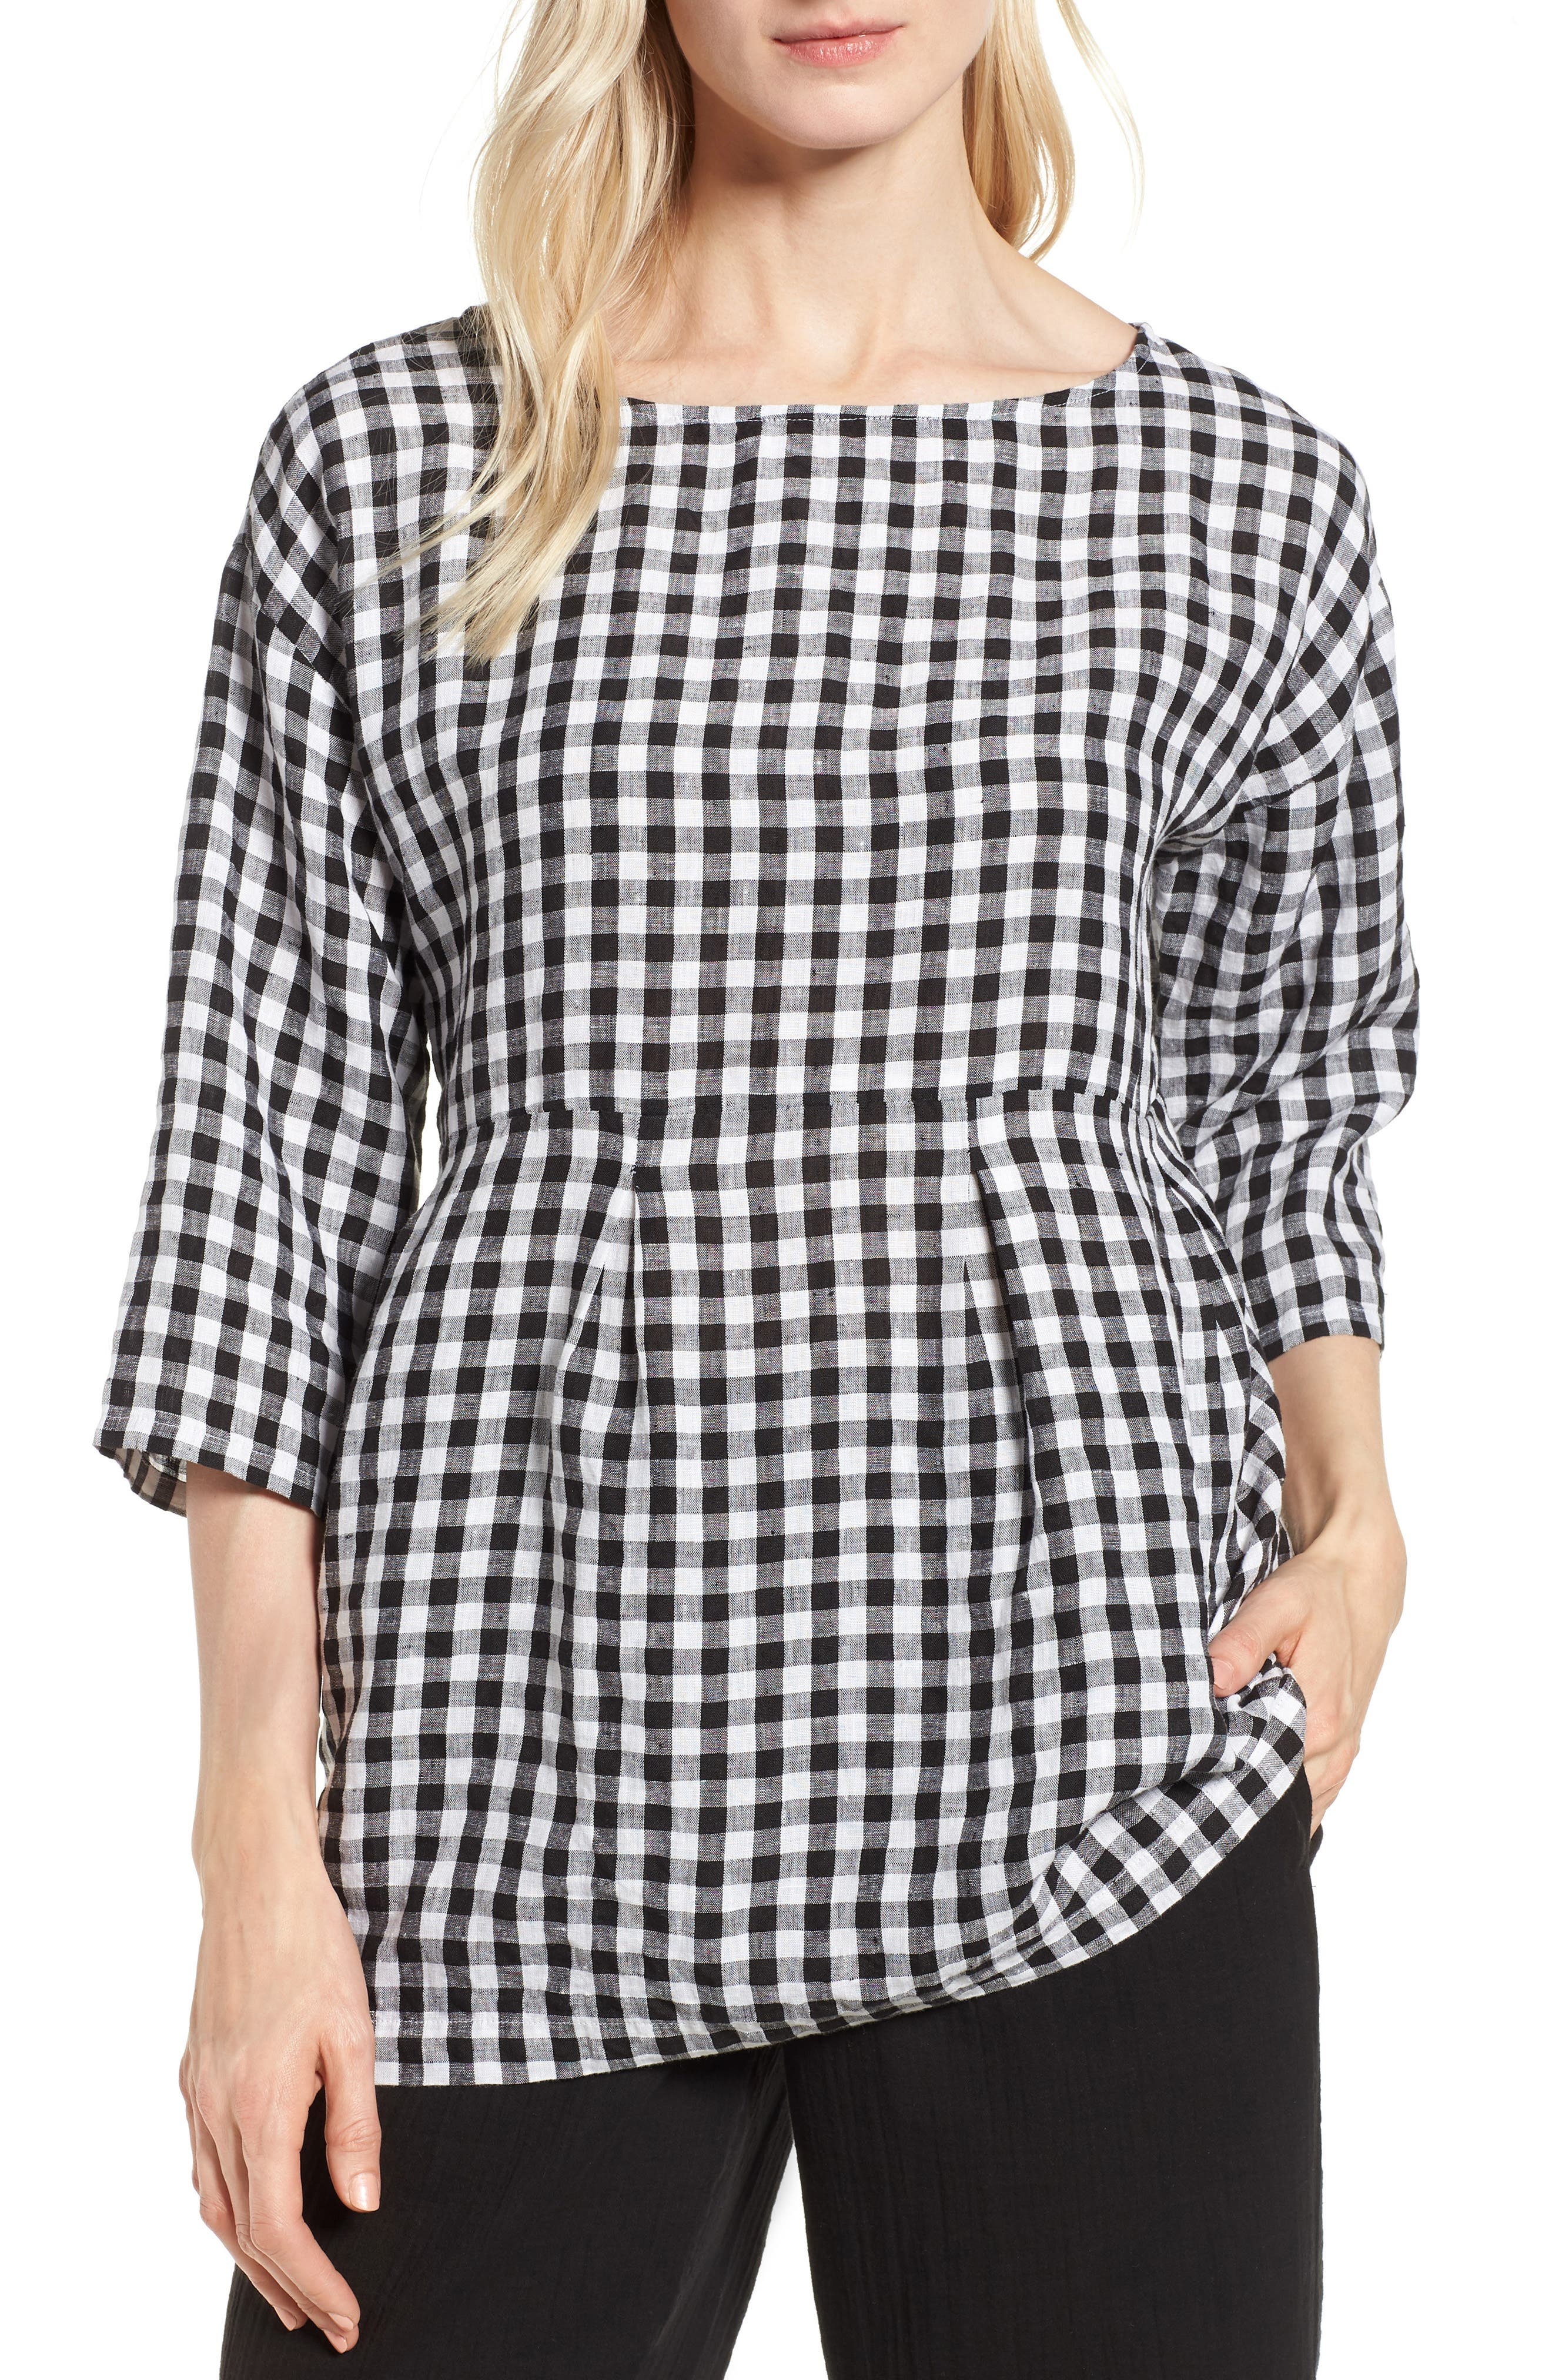 Gingham Organic Linen Top,                         Main,                         color, 018